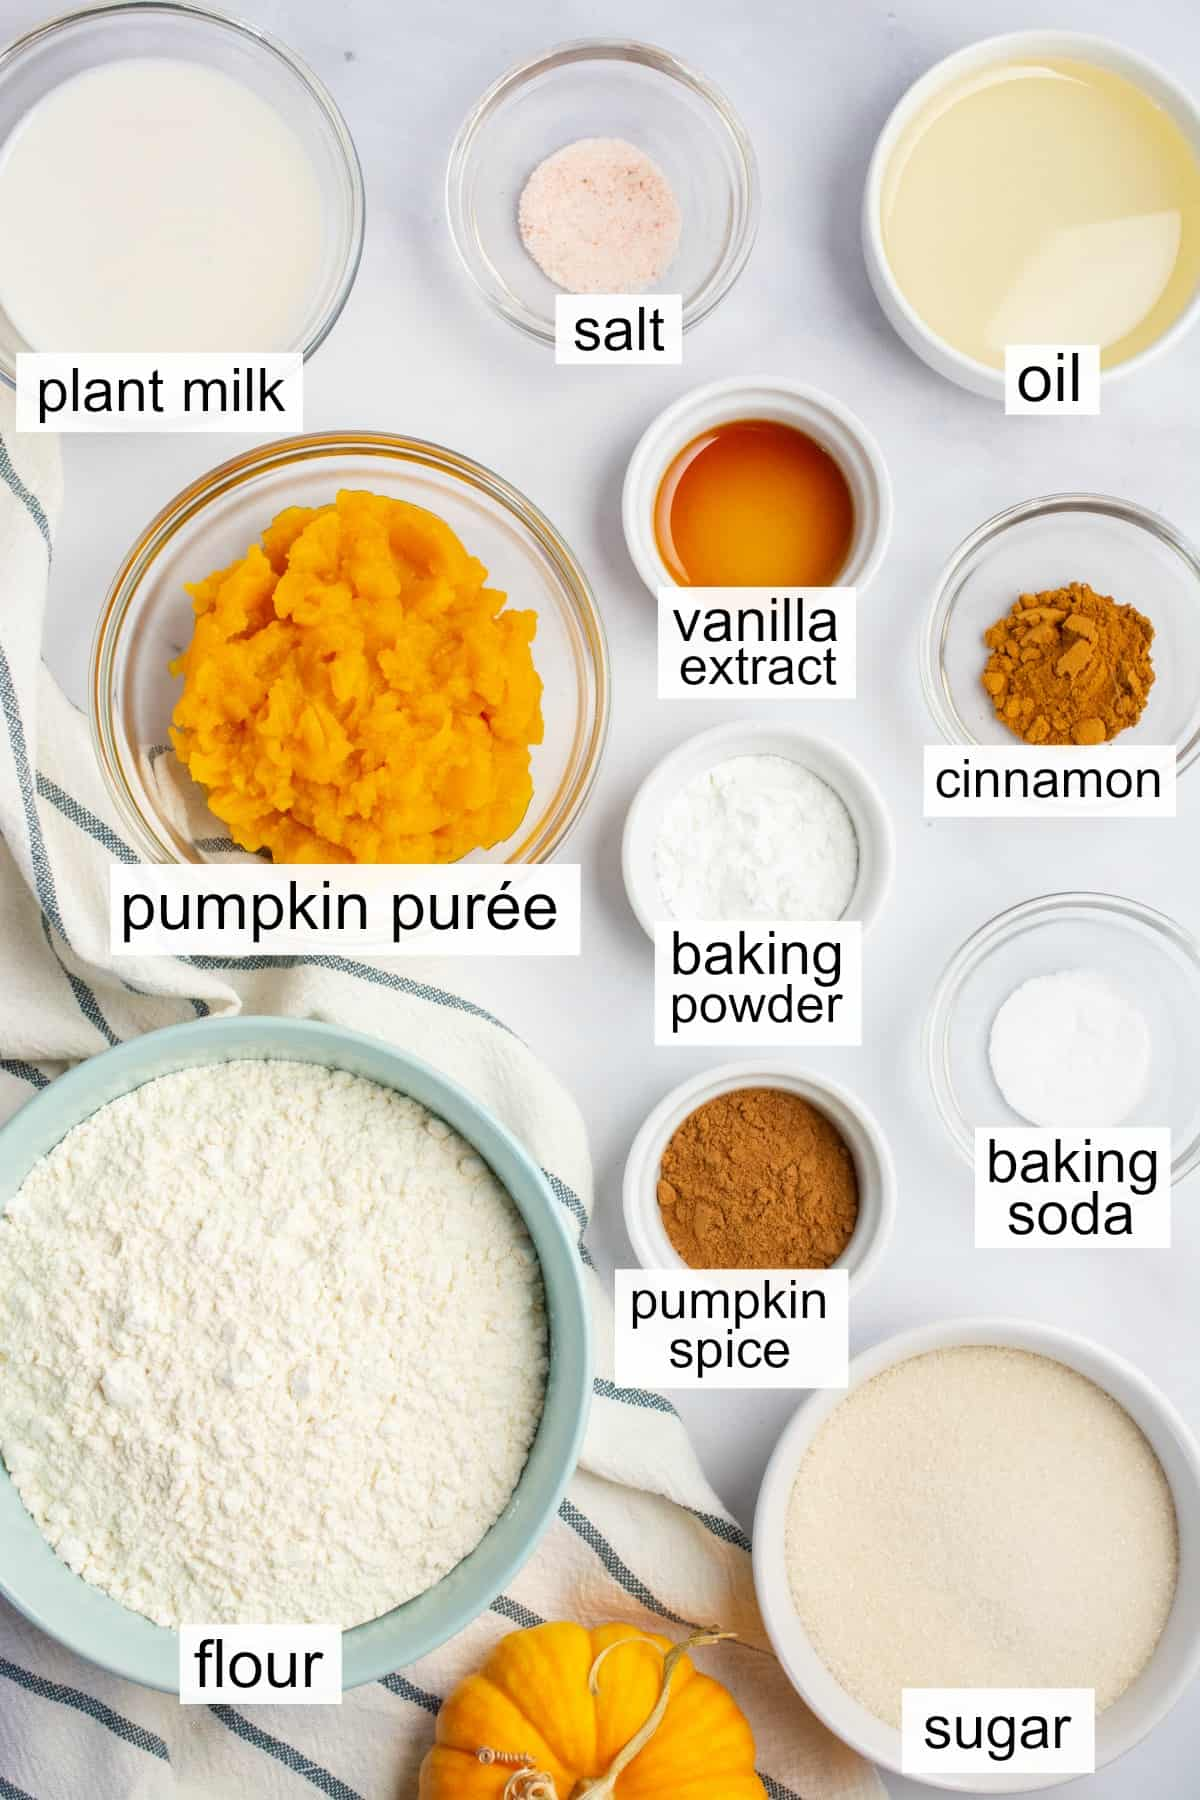 Labeled ingredients to make vegan pumpkin cake.